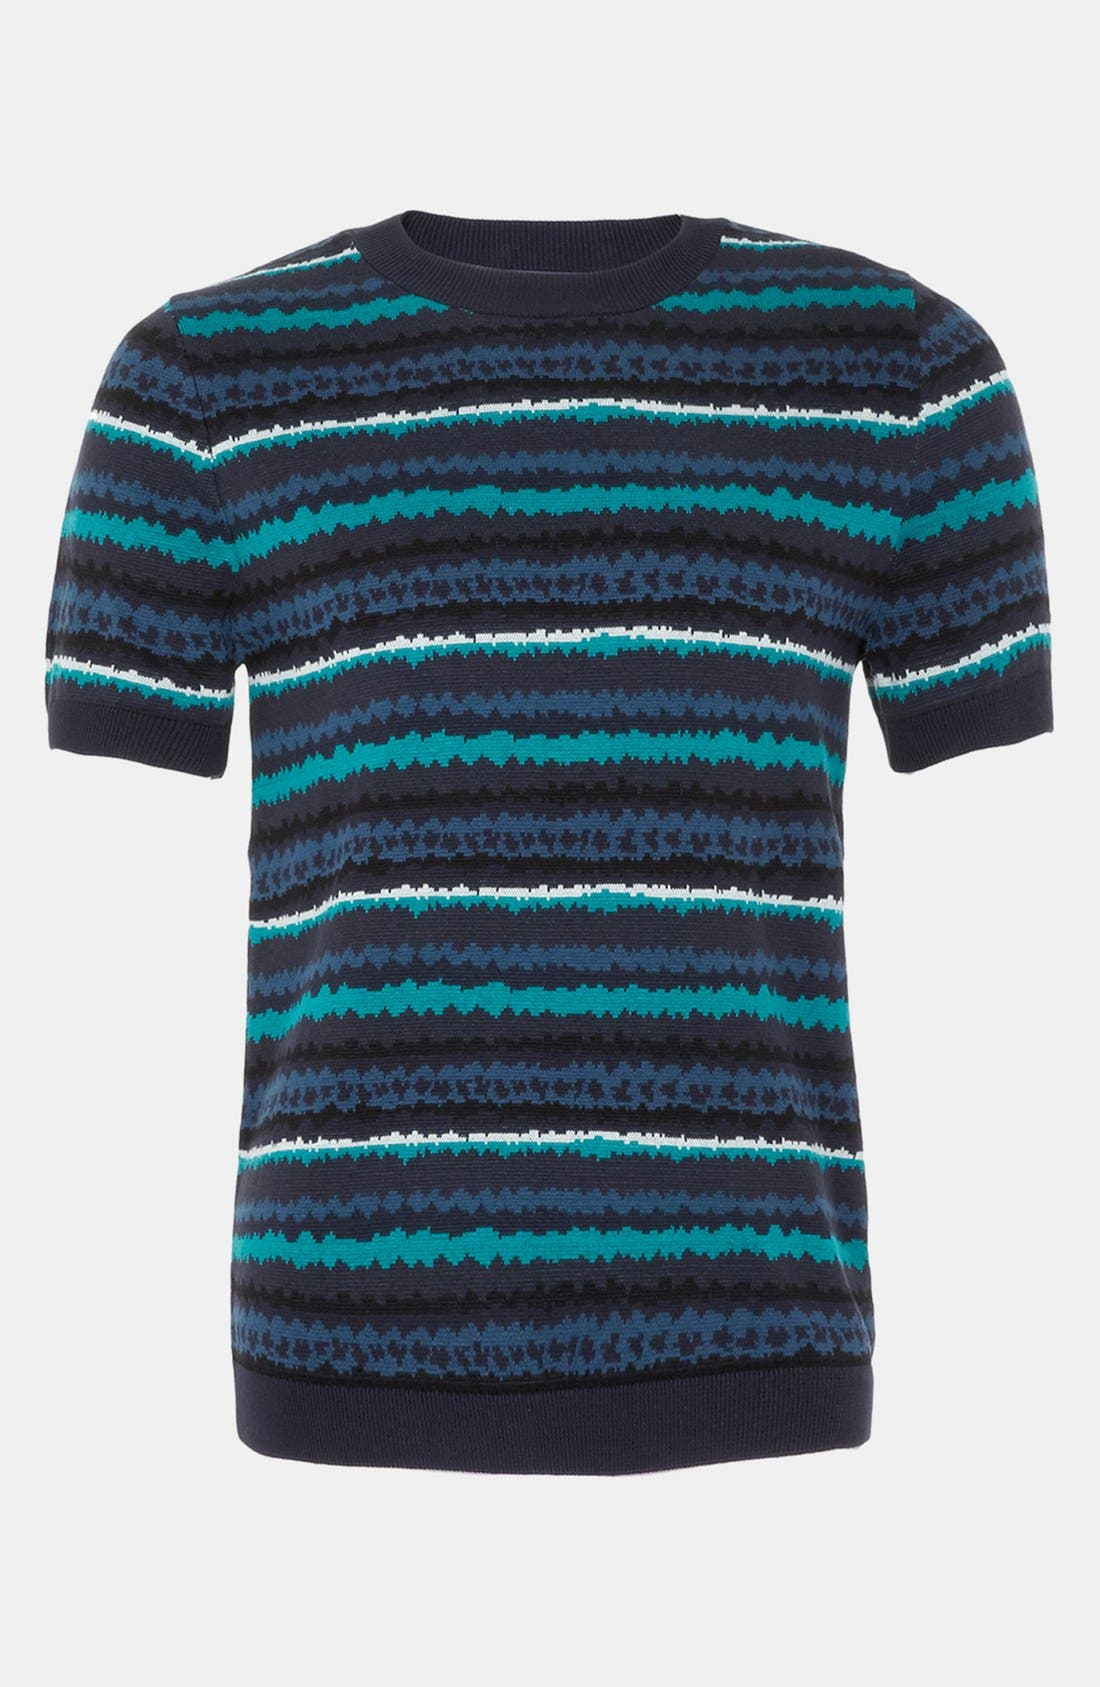 Alternate Image 1 Selected - Topman 'Static' Short Sleeve Sweater